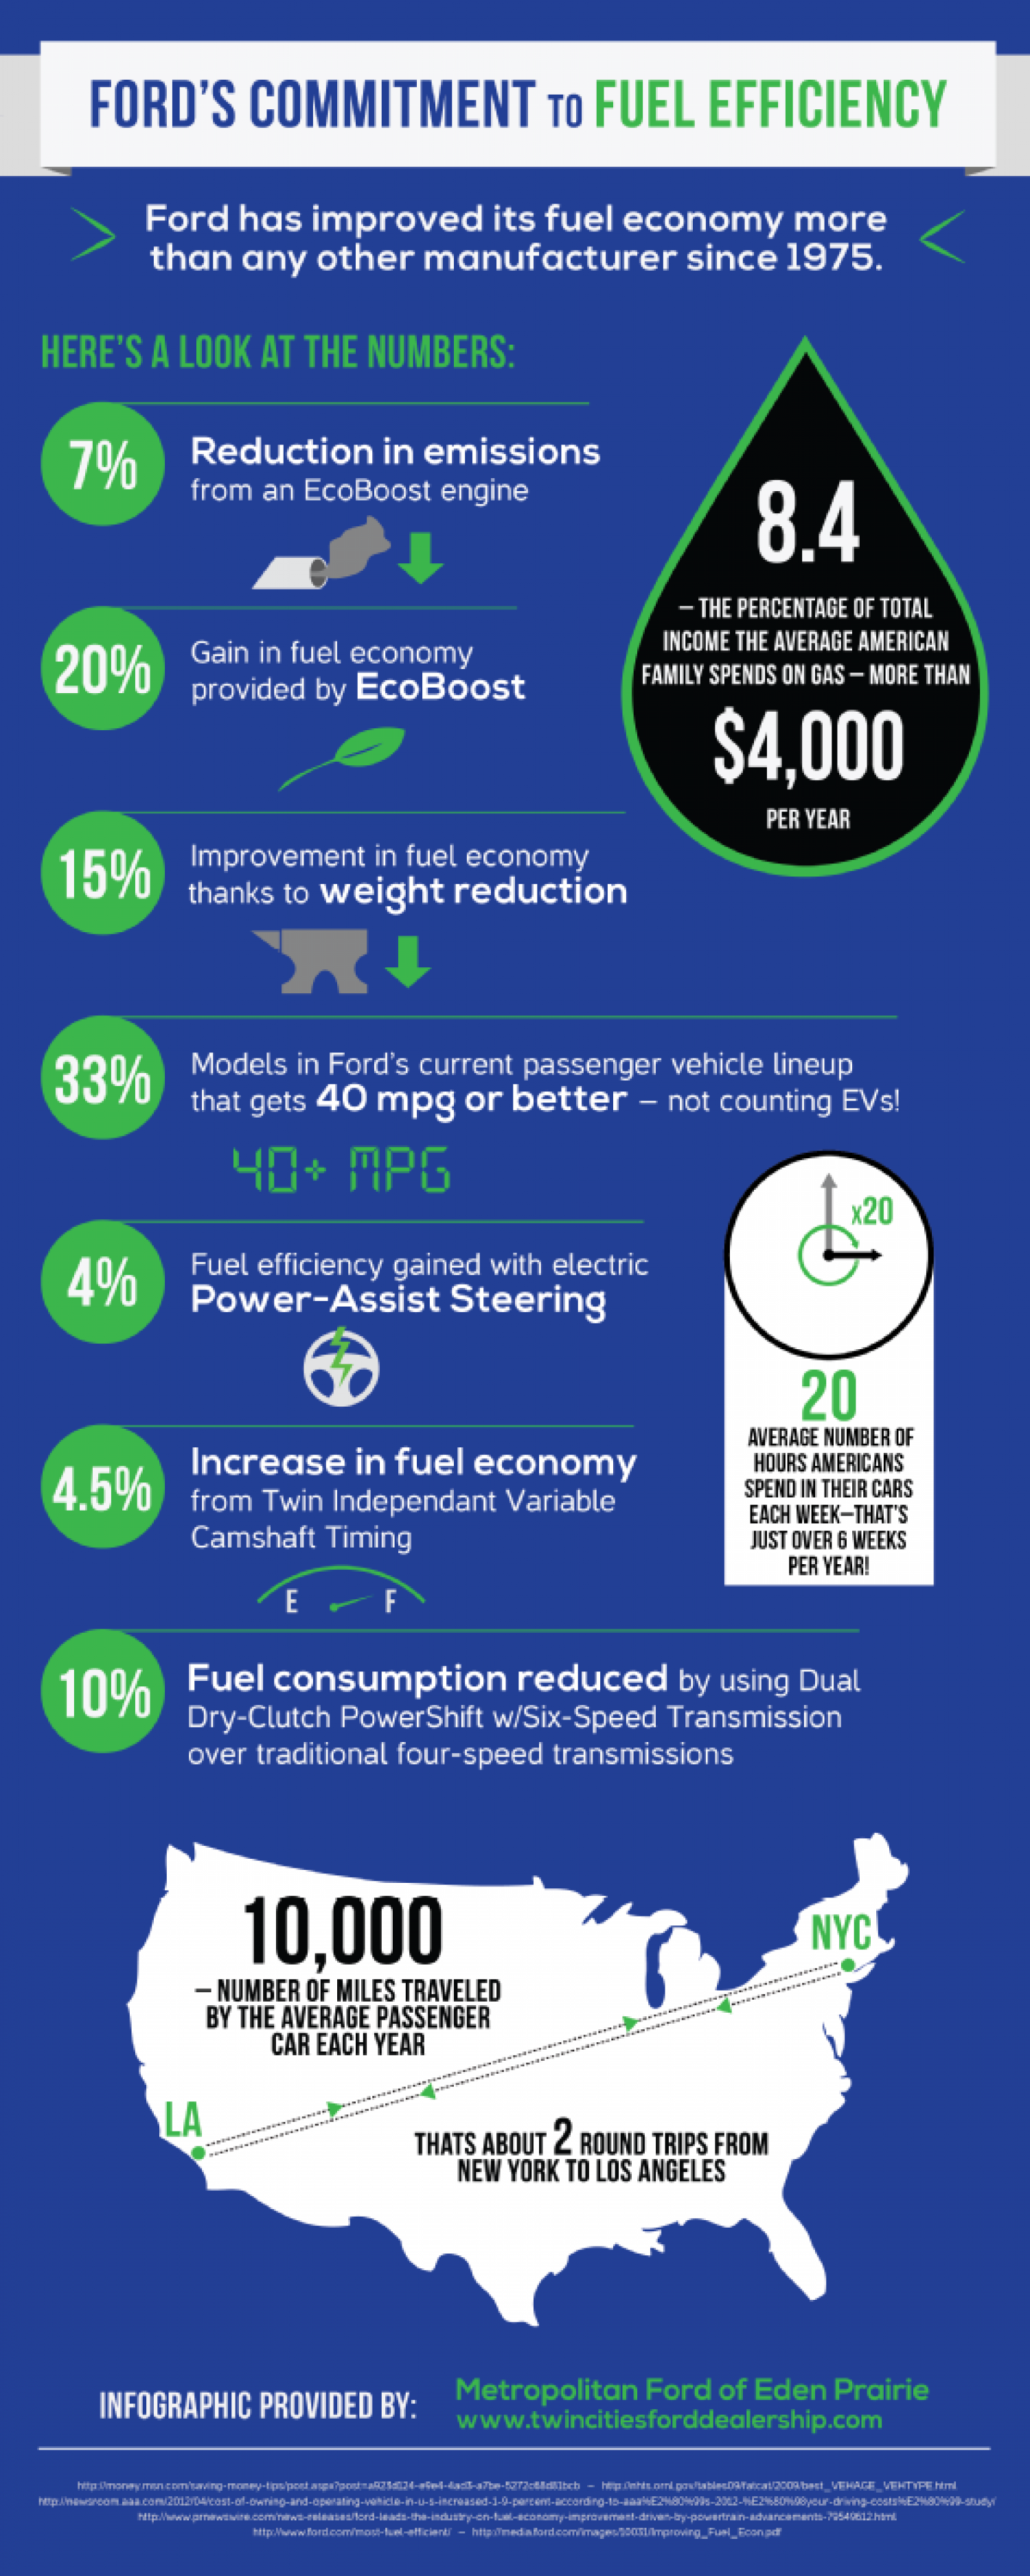 Ford's Commitment to Fuel Efficiency Infographic